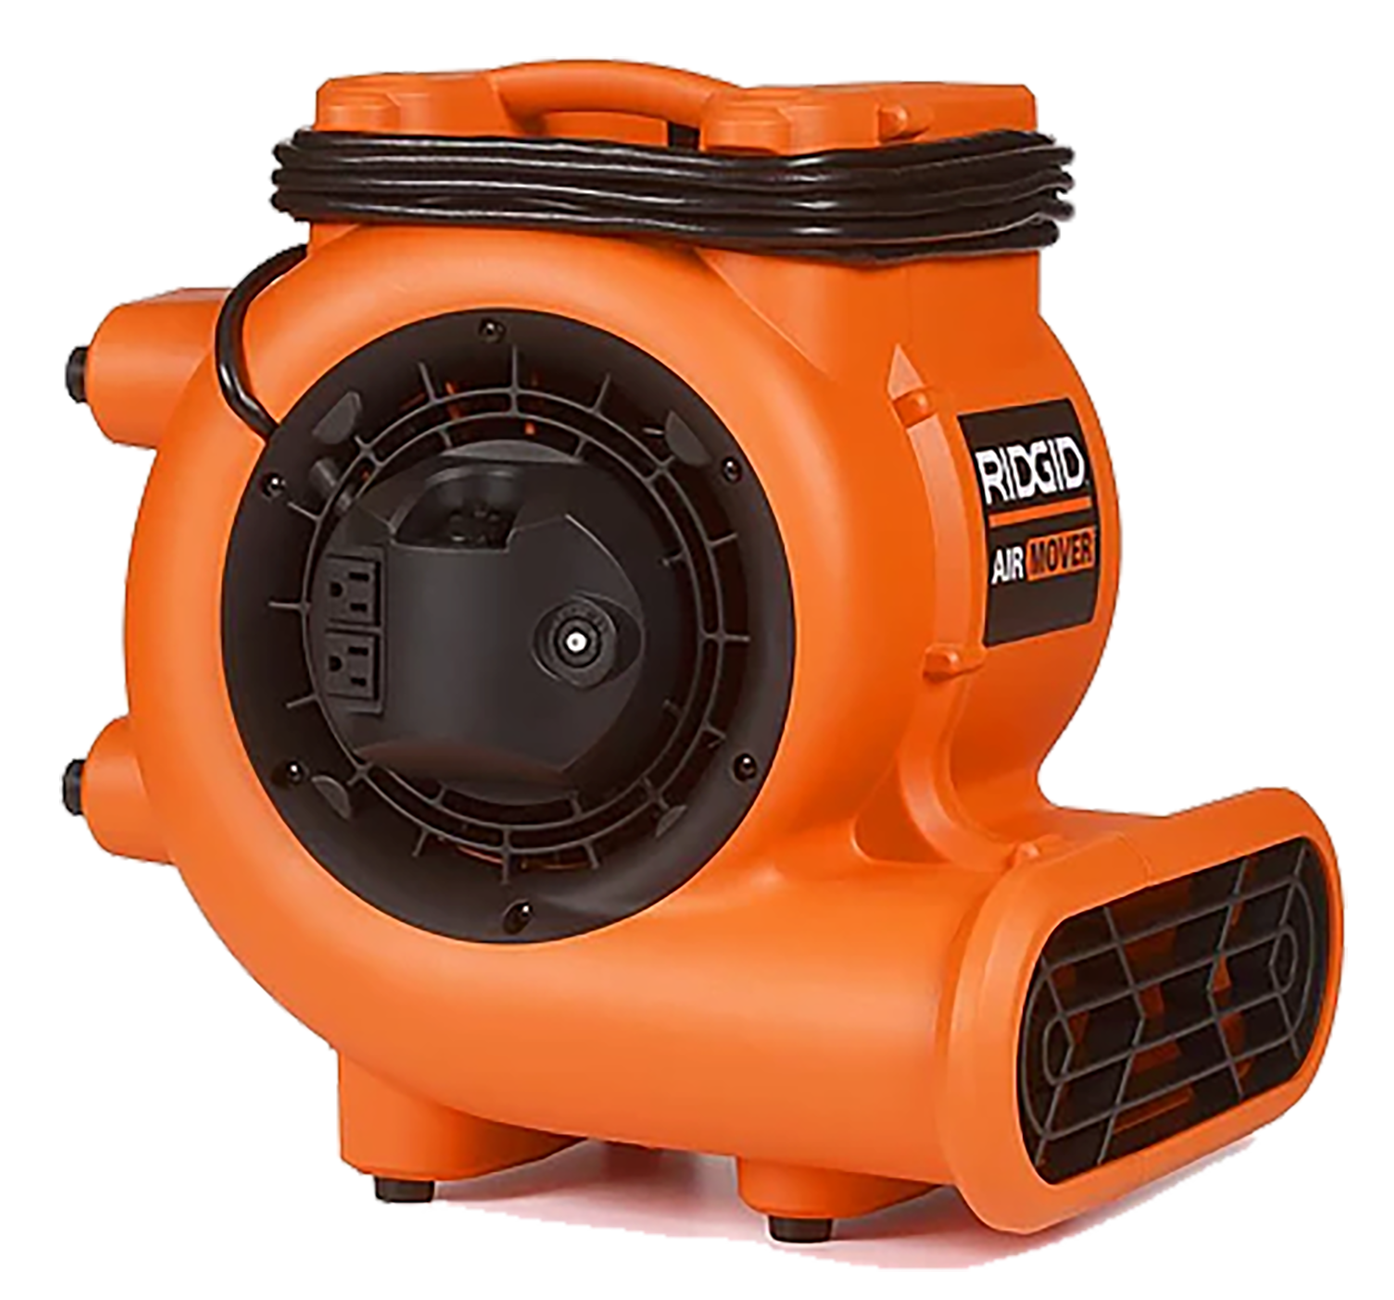 Rigid_Air_Mover_Fan rentals